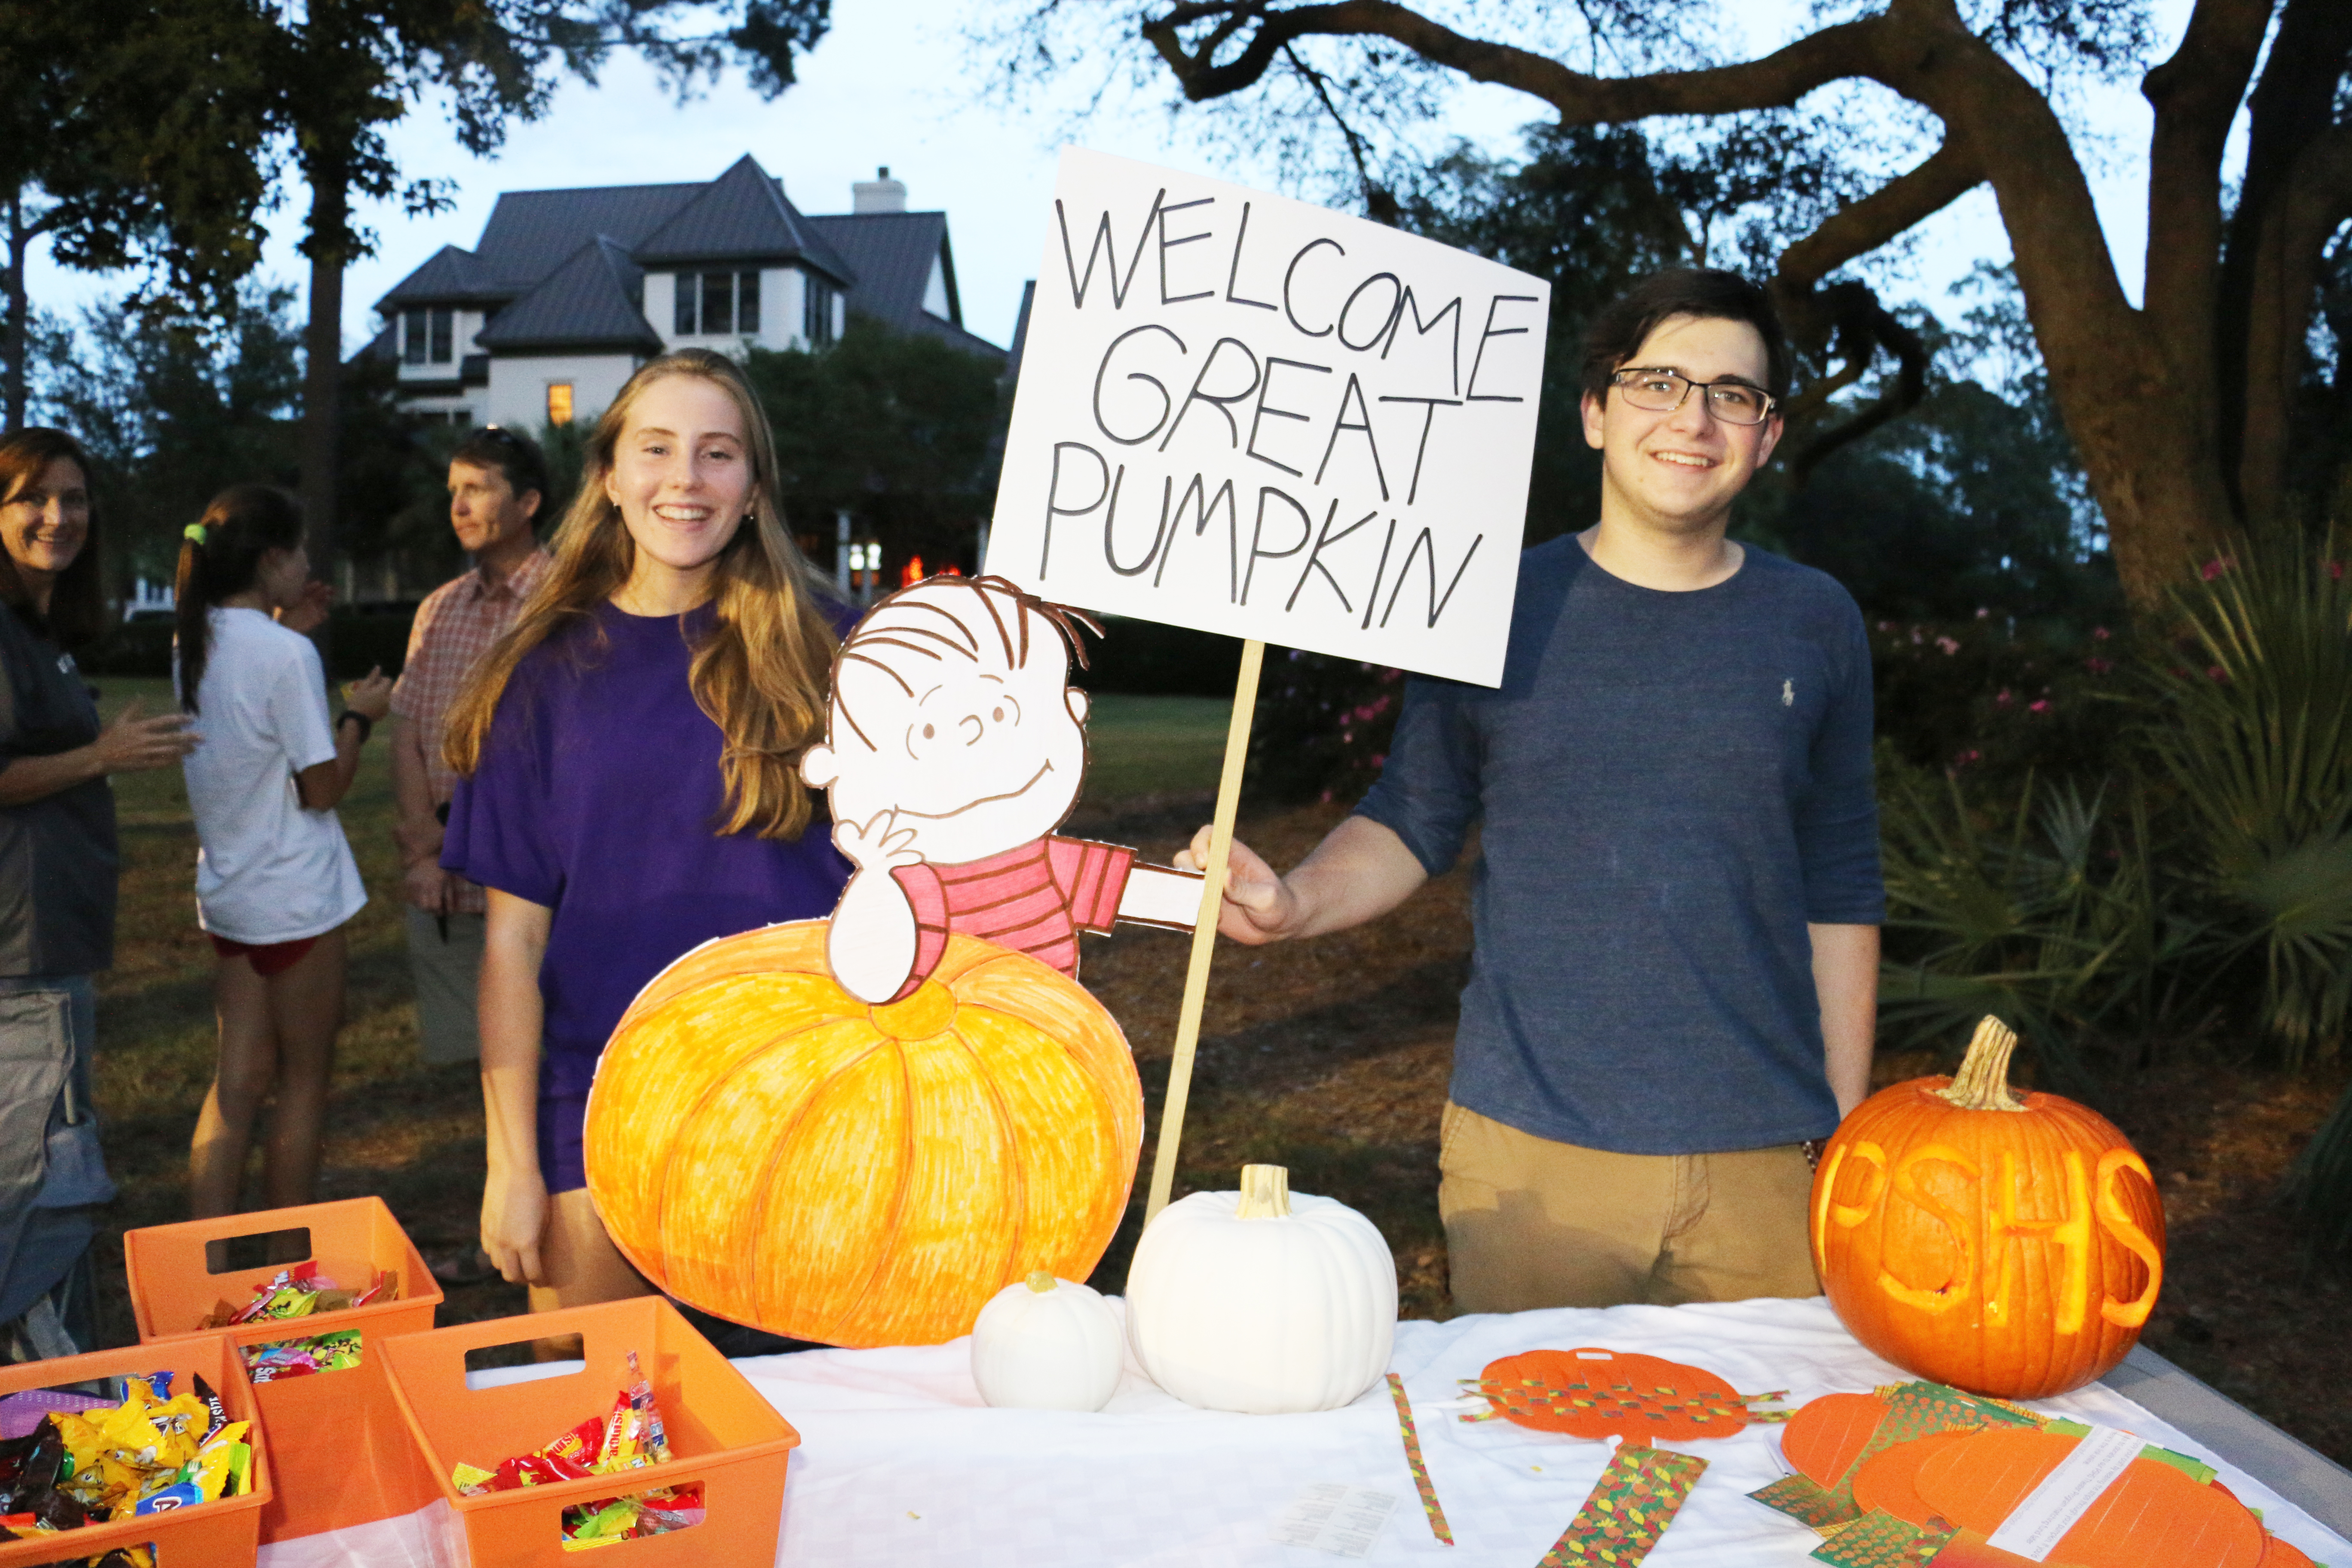 Camille Fei and Emmett Gately welcome guests to the Philip Simmons High School table with their Great Pumpkin sign.